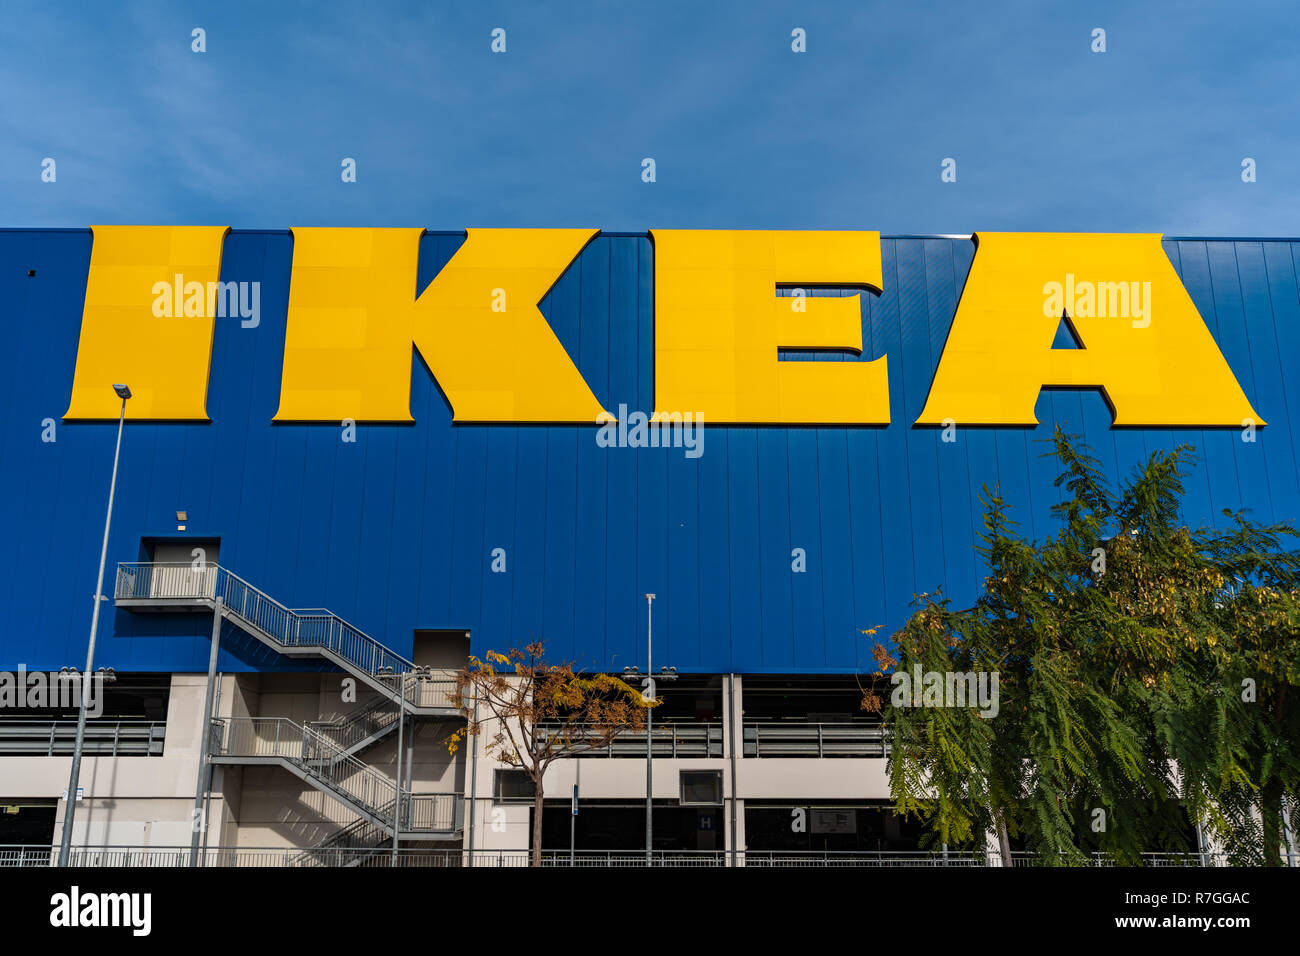 Valencia,Spain - December 09, 2018: Ikea store lot in Alfafar, Valencia. Huge  yellow Ikea word on blue background. Blue skyes on the top. Exterior vi - Stock Image